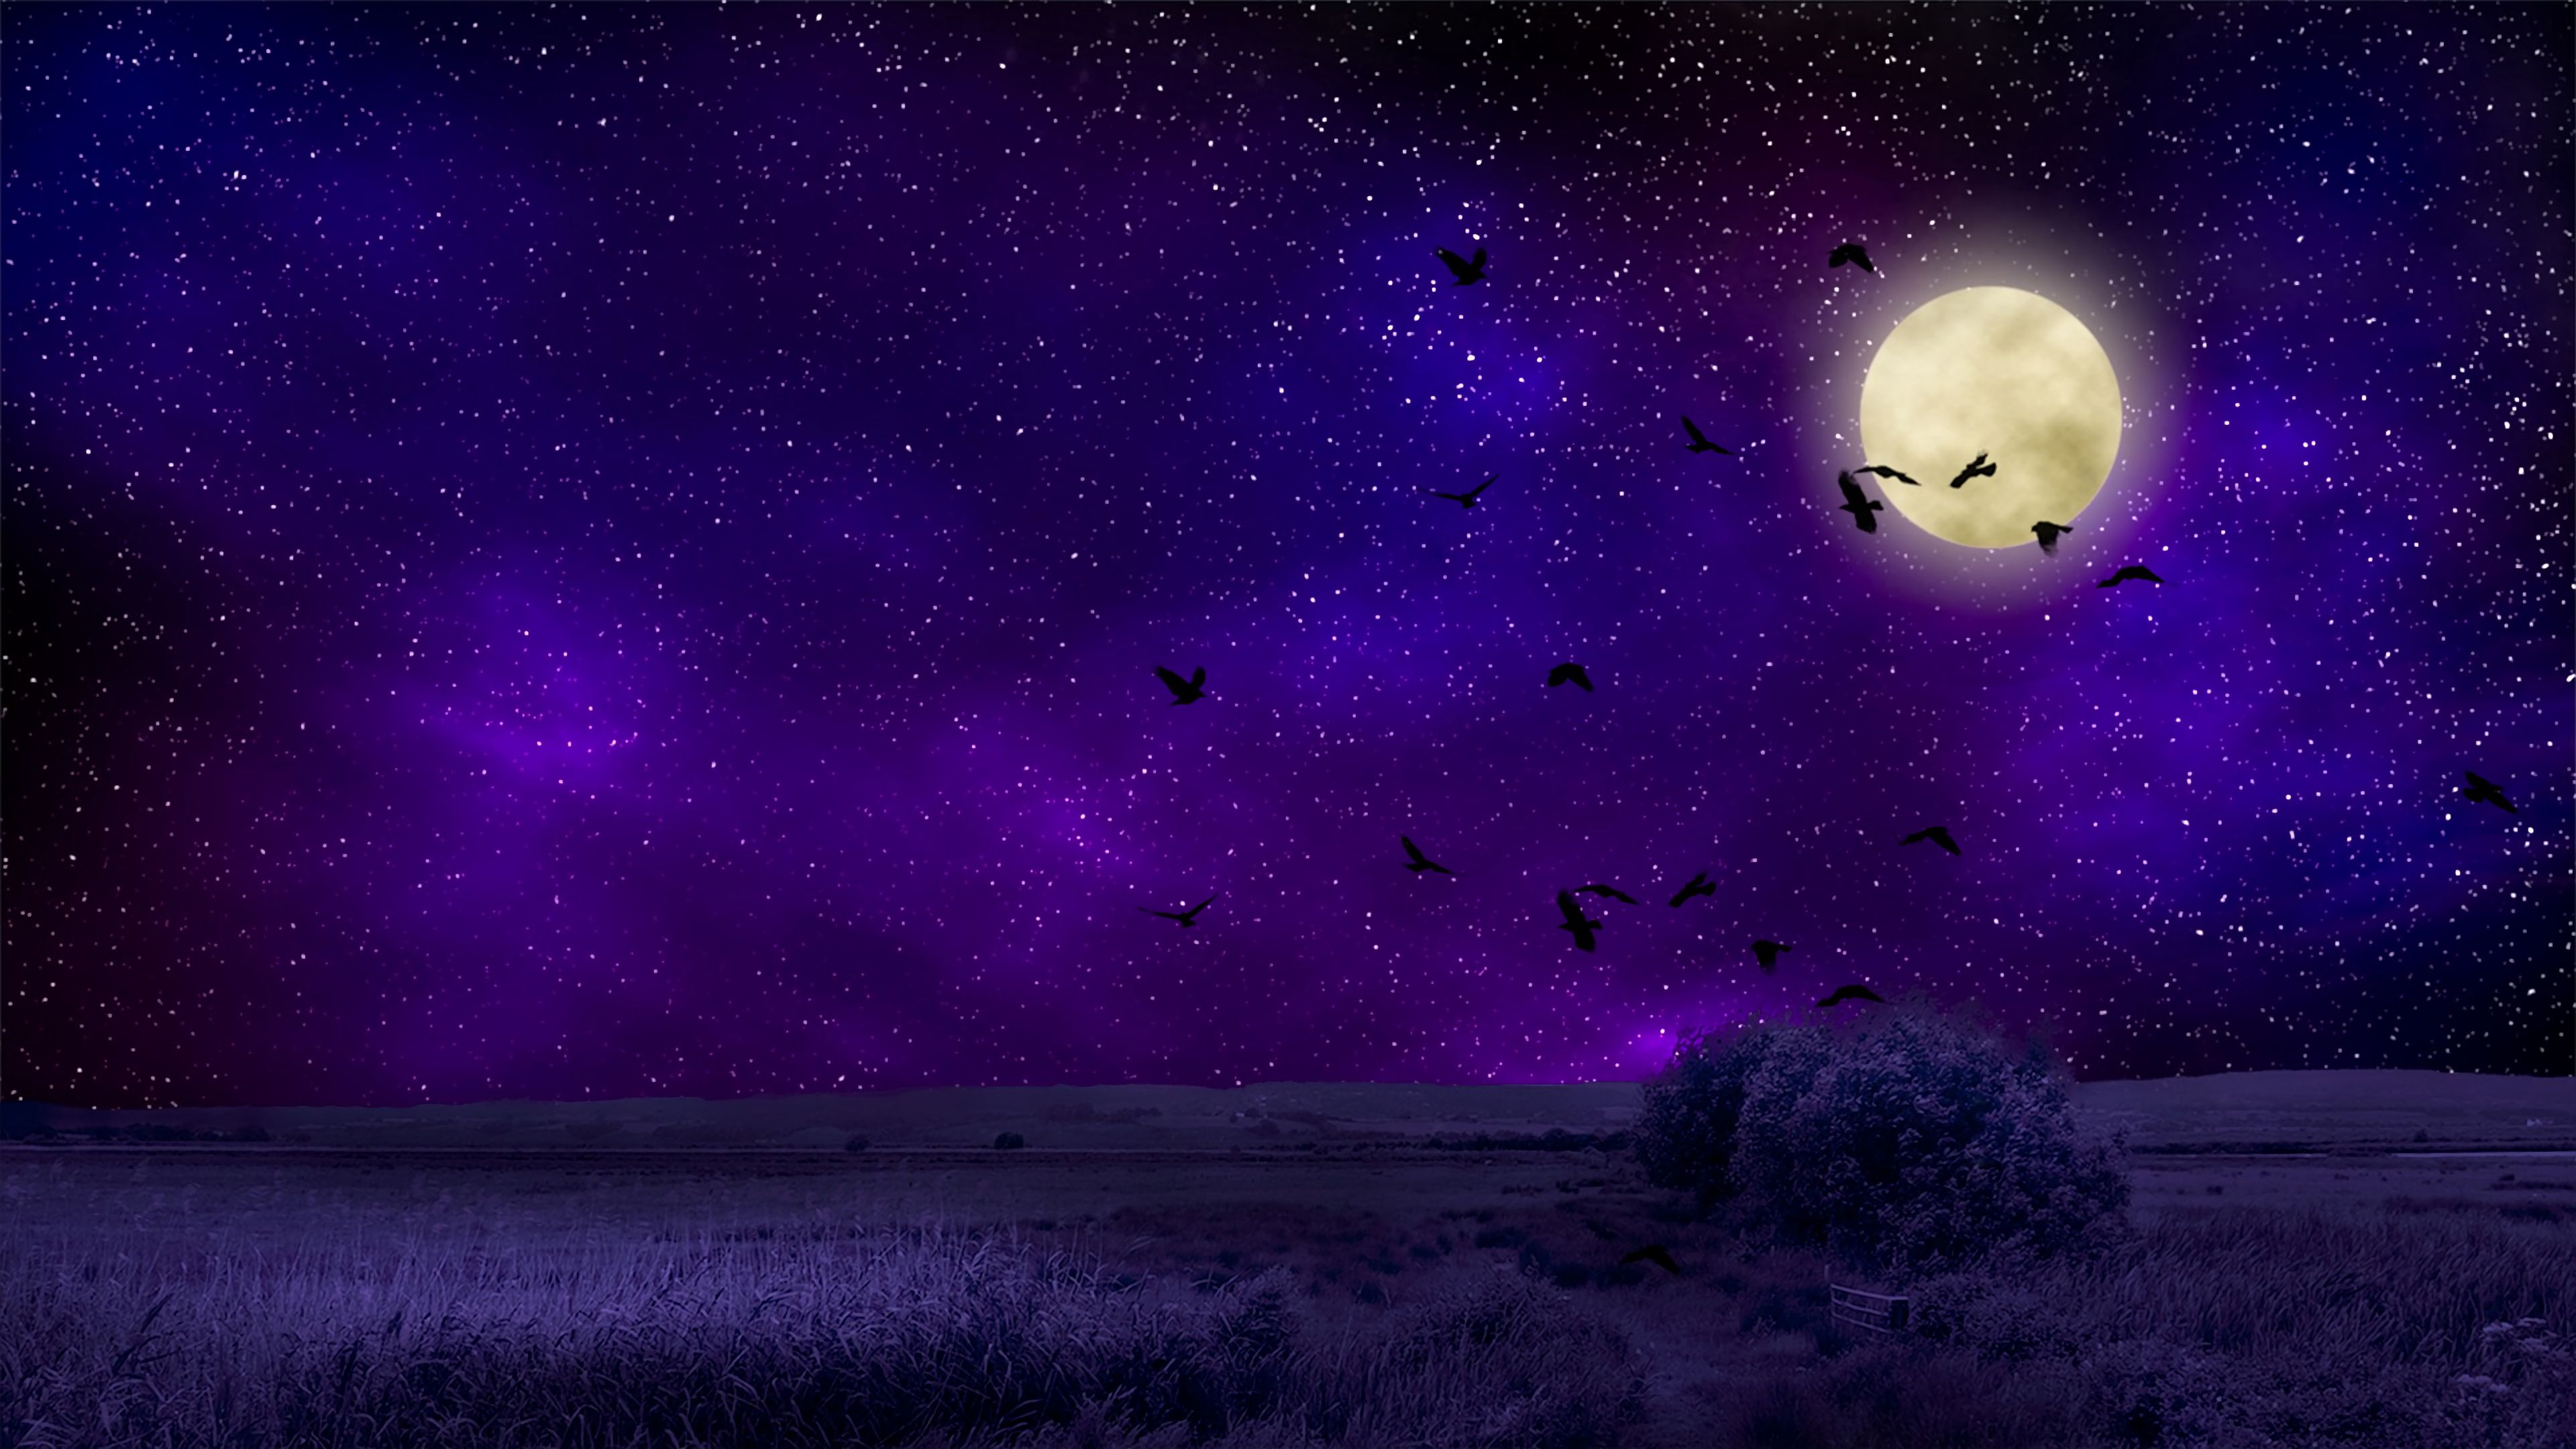 57317 download wallpaper Birds, Nature, Night, Starry Sky, Photoshop, Full Moon screensavers and pictures for free